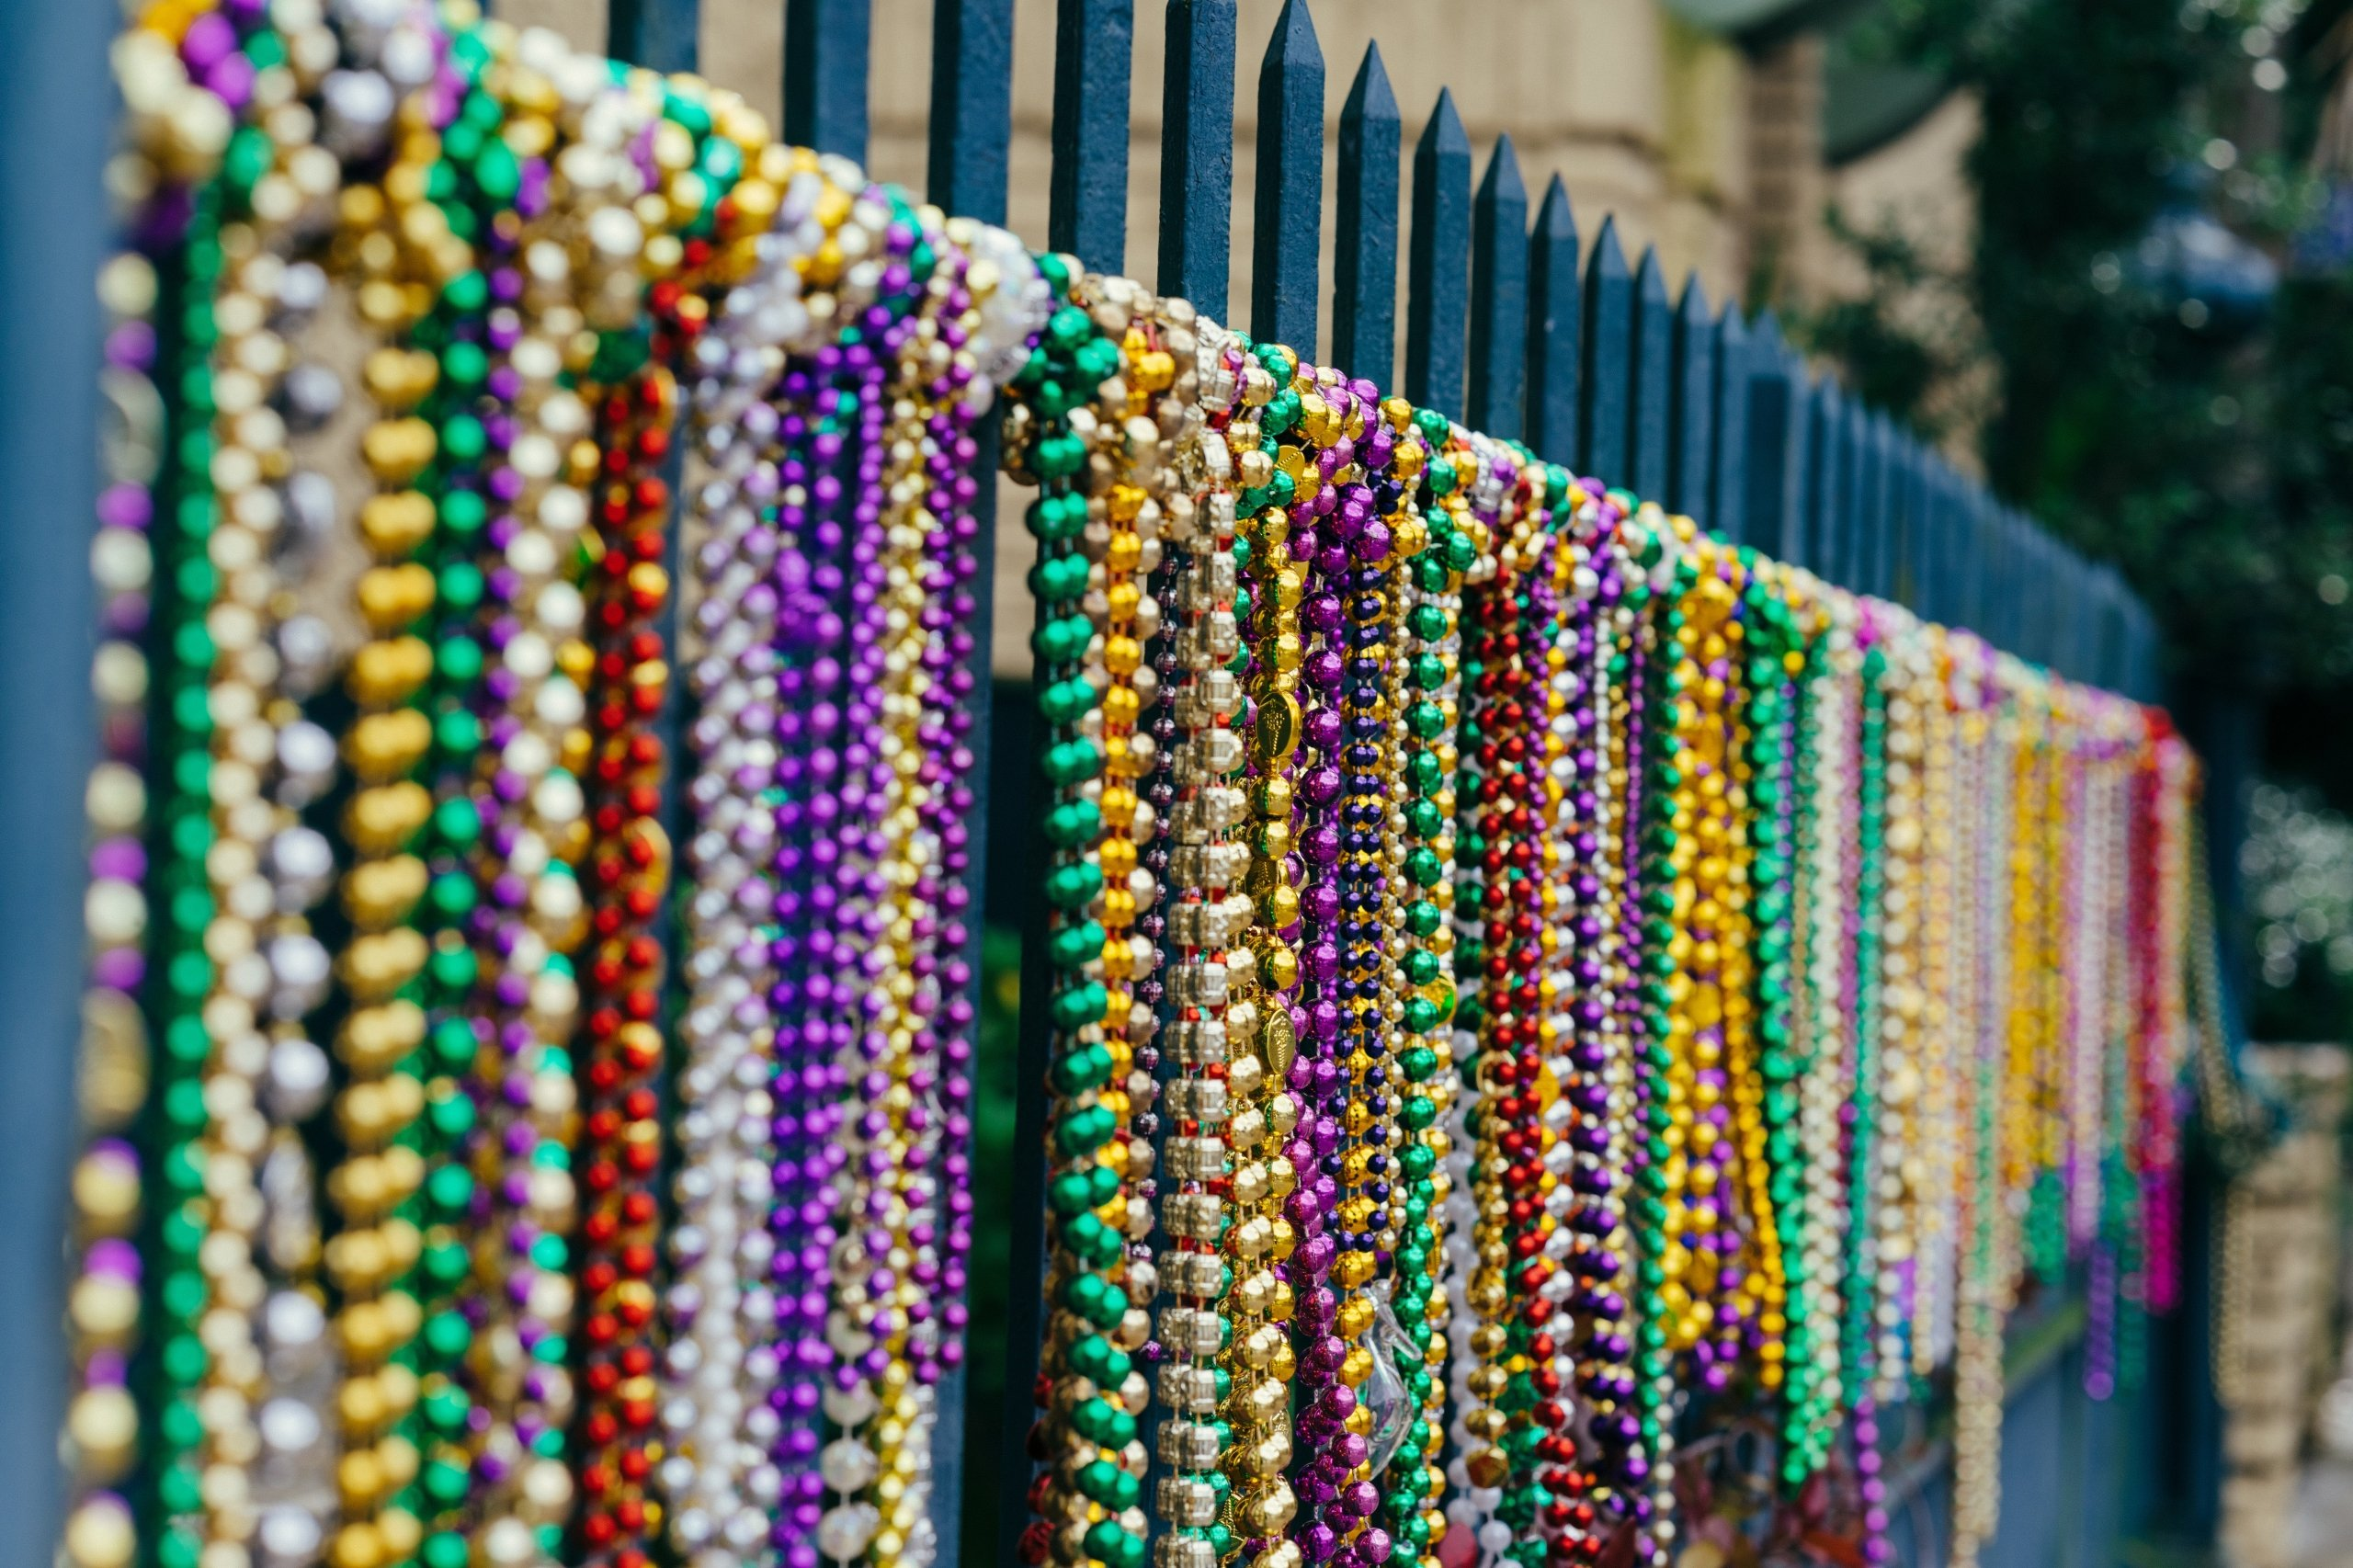 Colorful mardi gras beads tied to a blue fence